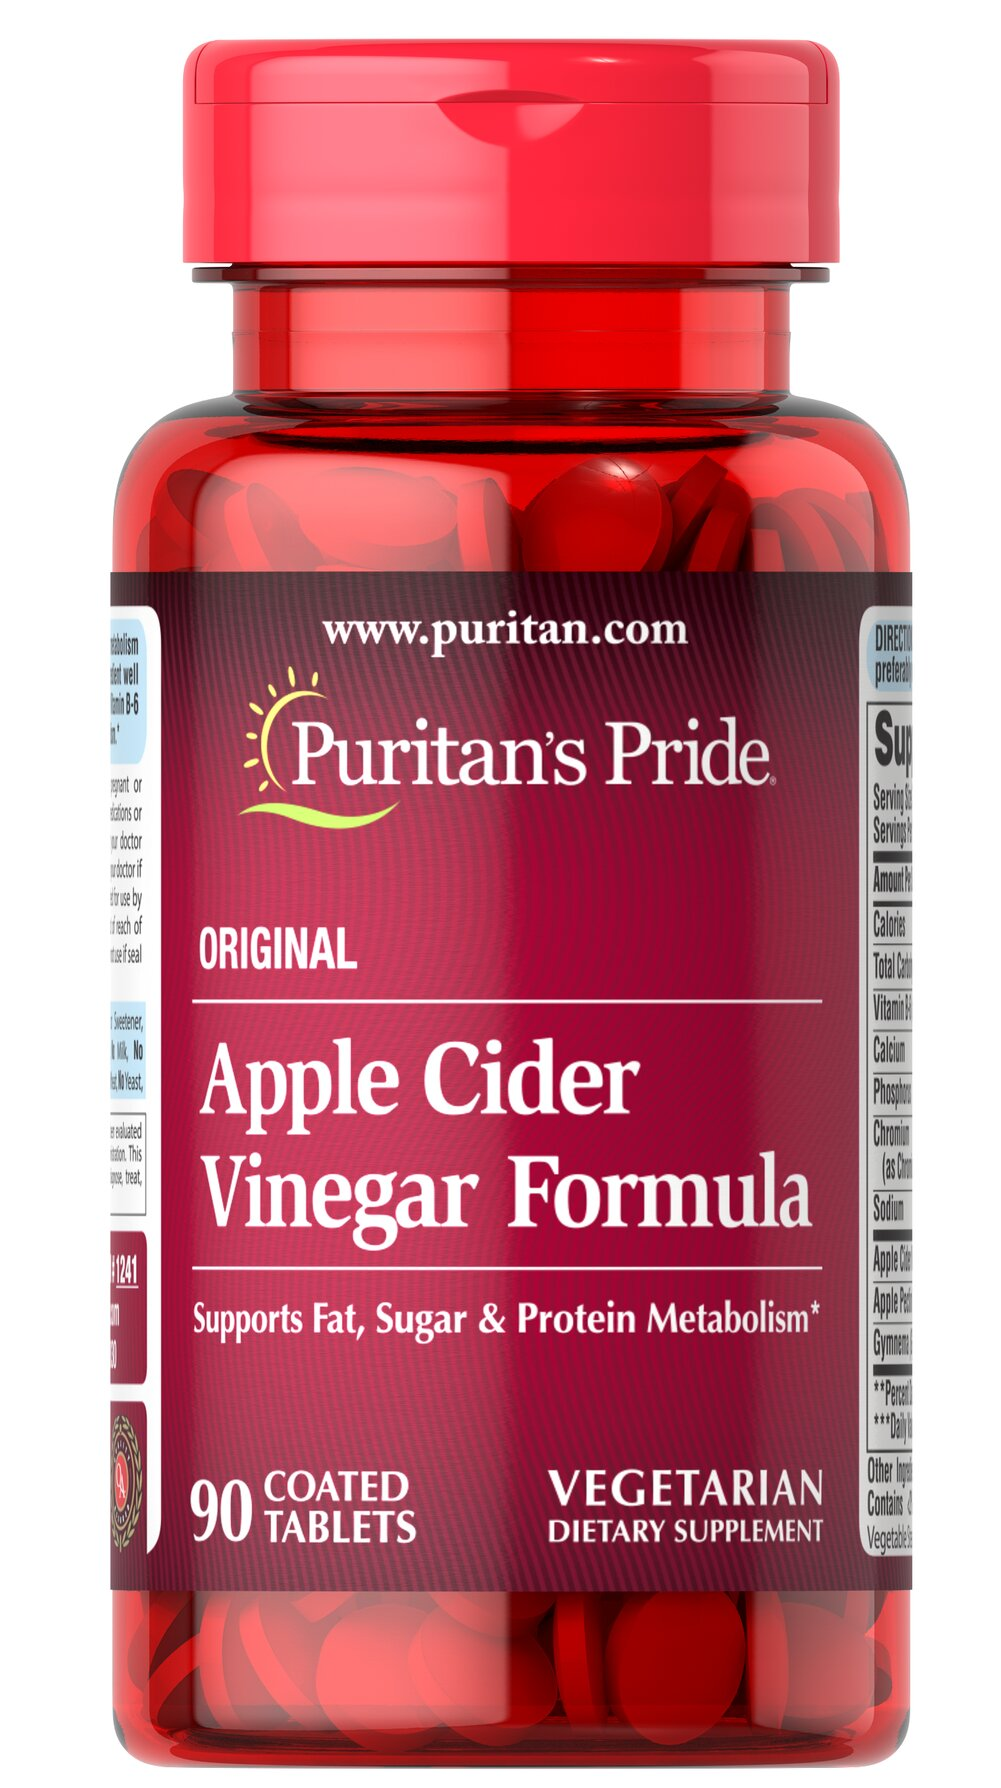 Apple Cider Vinegar Formula Thumbnail Alternate Bottle View